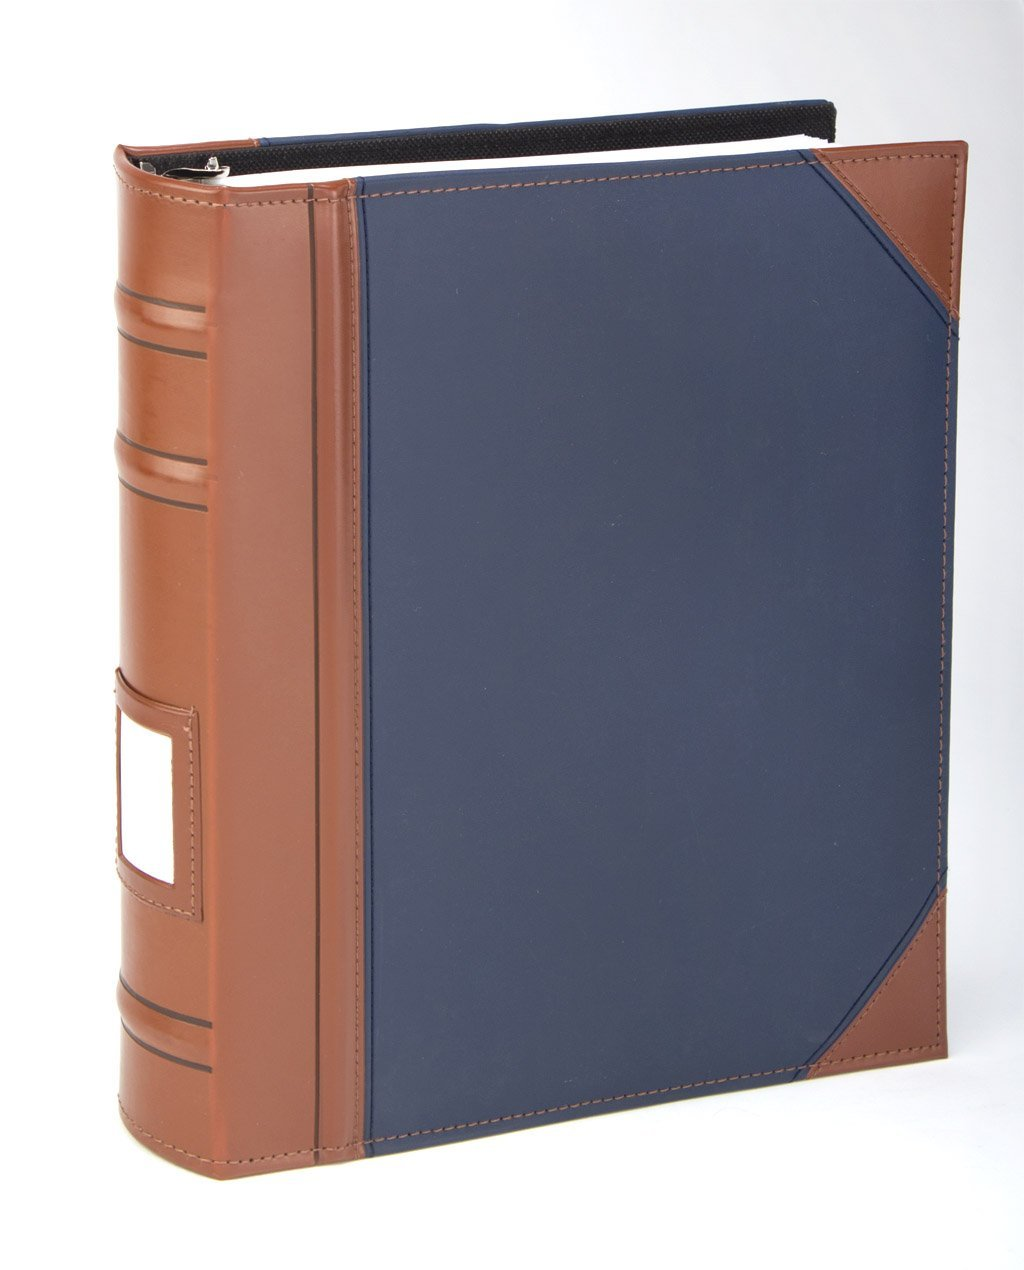 cheap 3 inch binder spine find 3 inch binder spine deals on line at